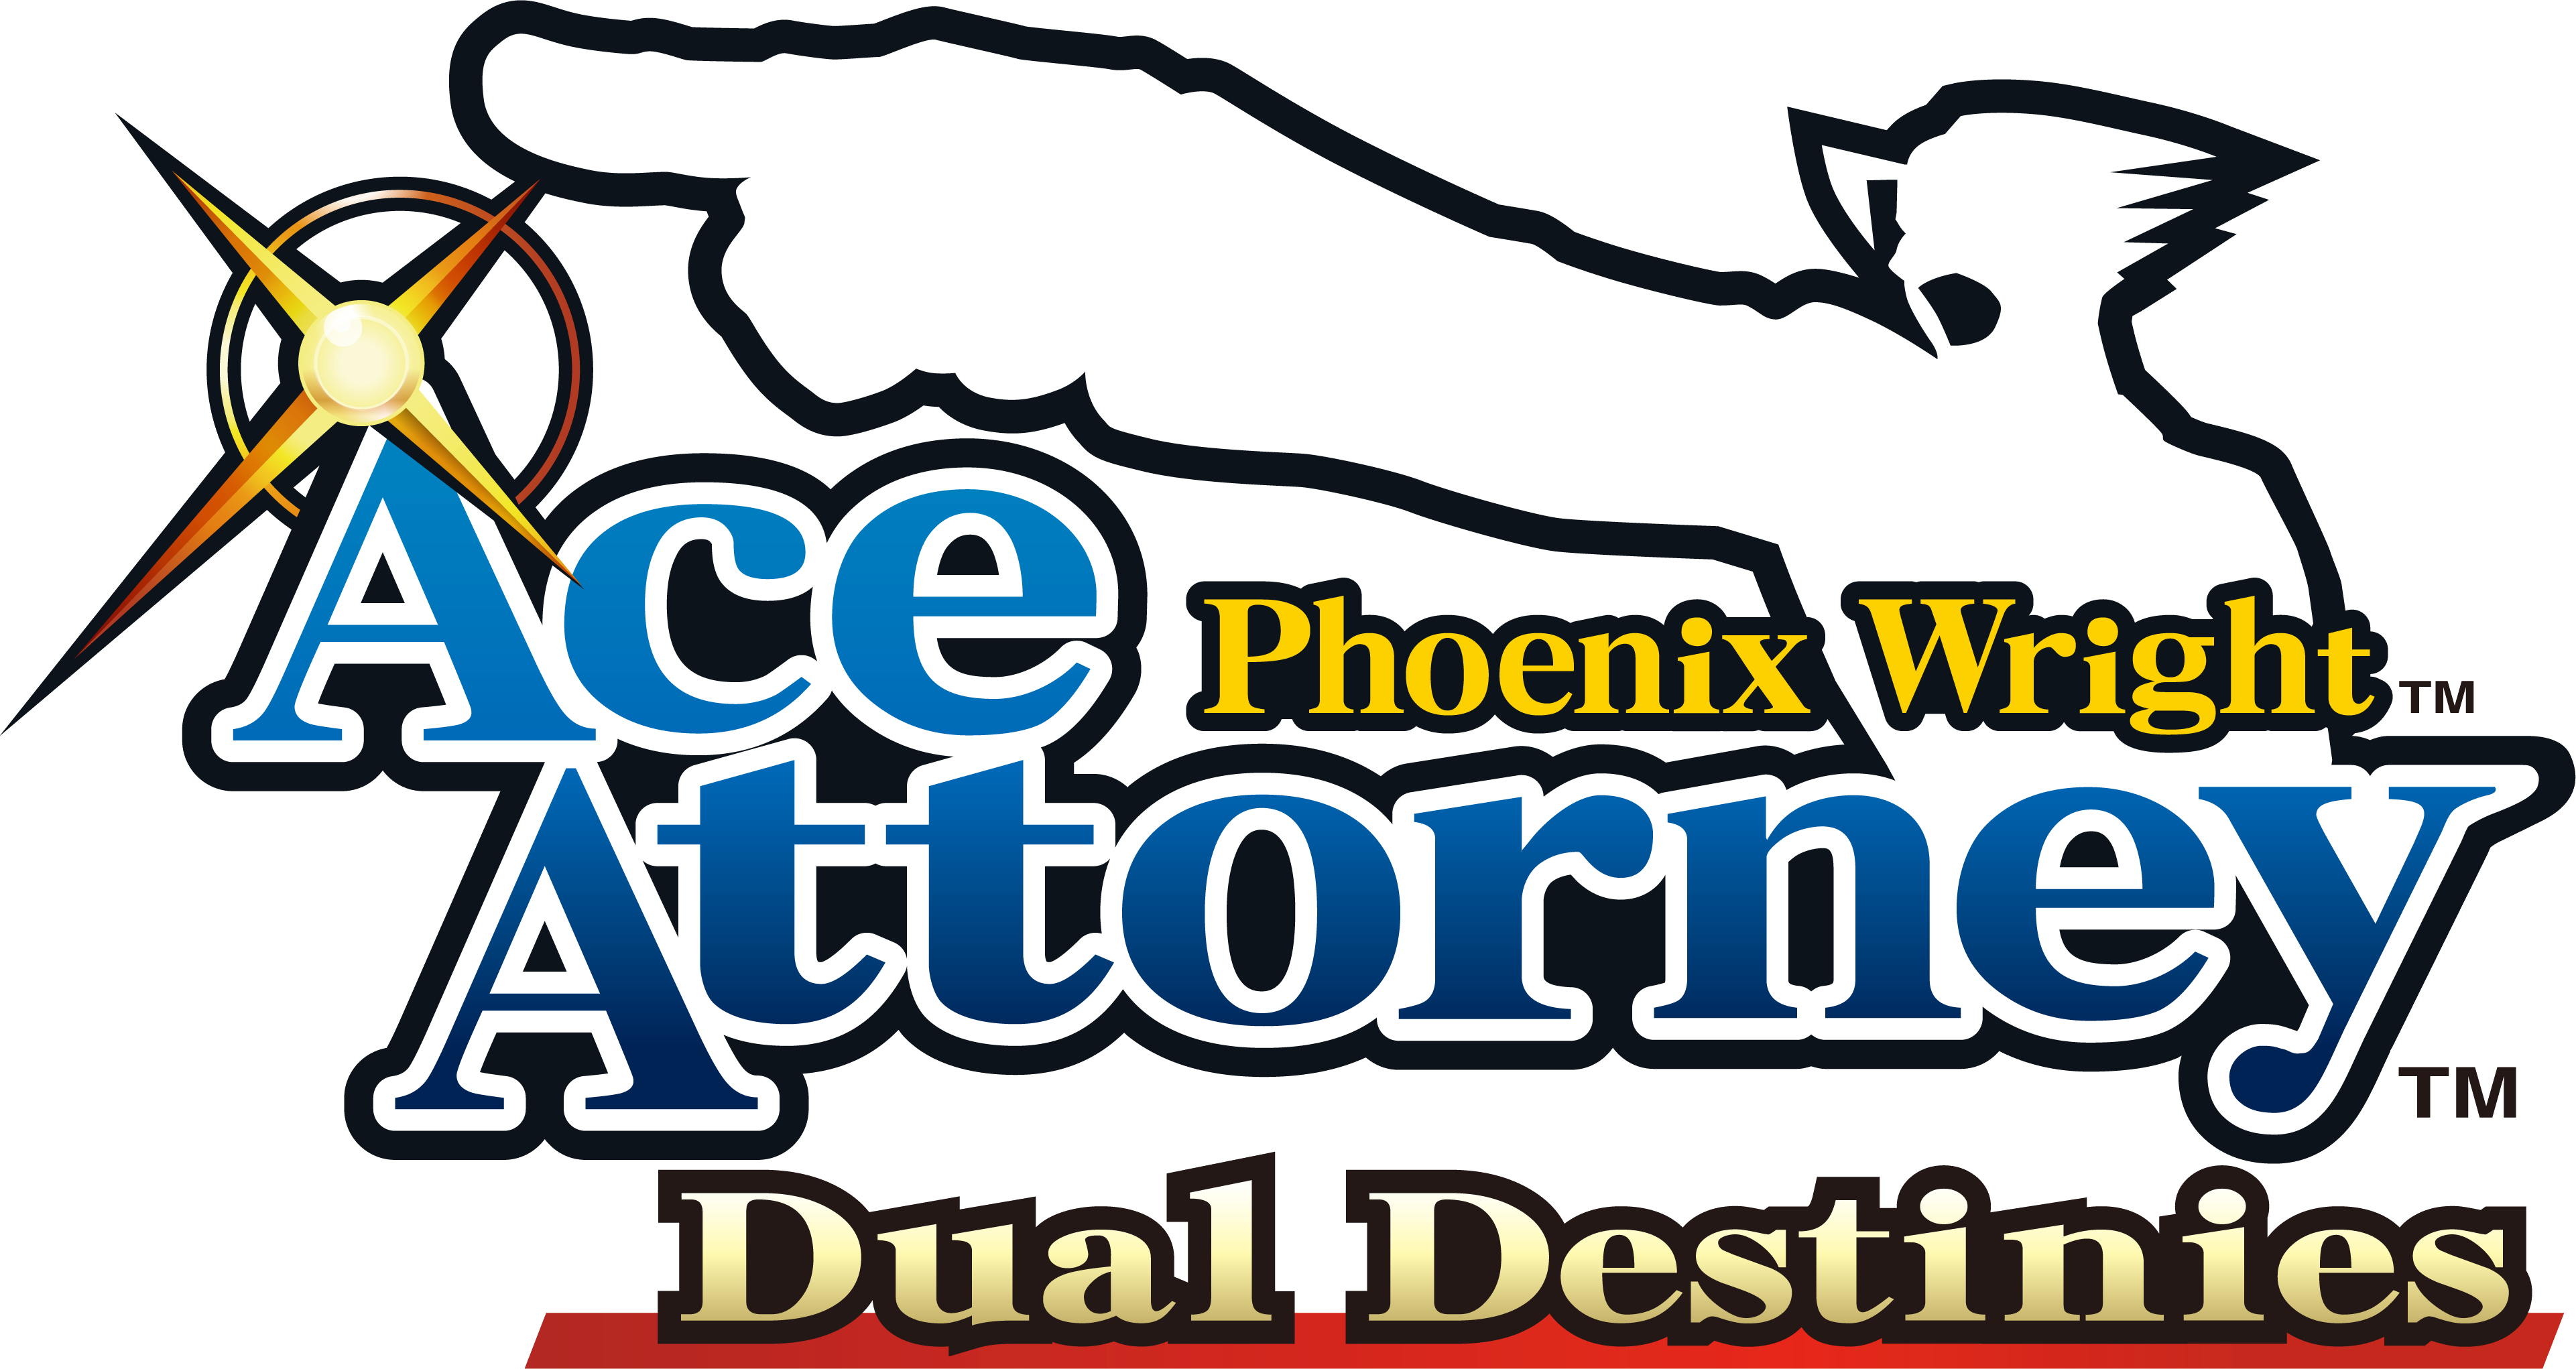 Phoenix_Wright_Ace_Attorney_Dual_Destinies_logo.png(3843×2043)